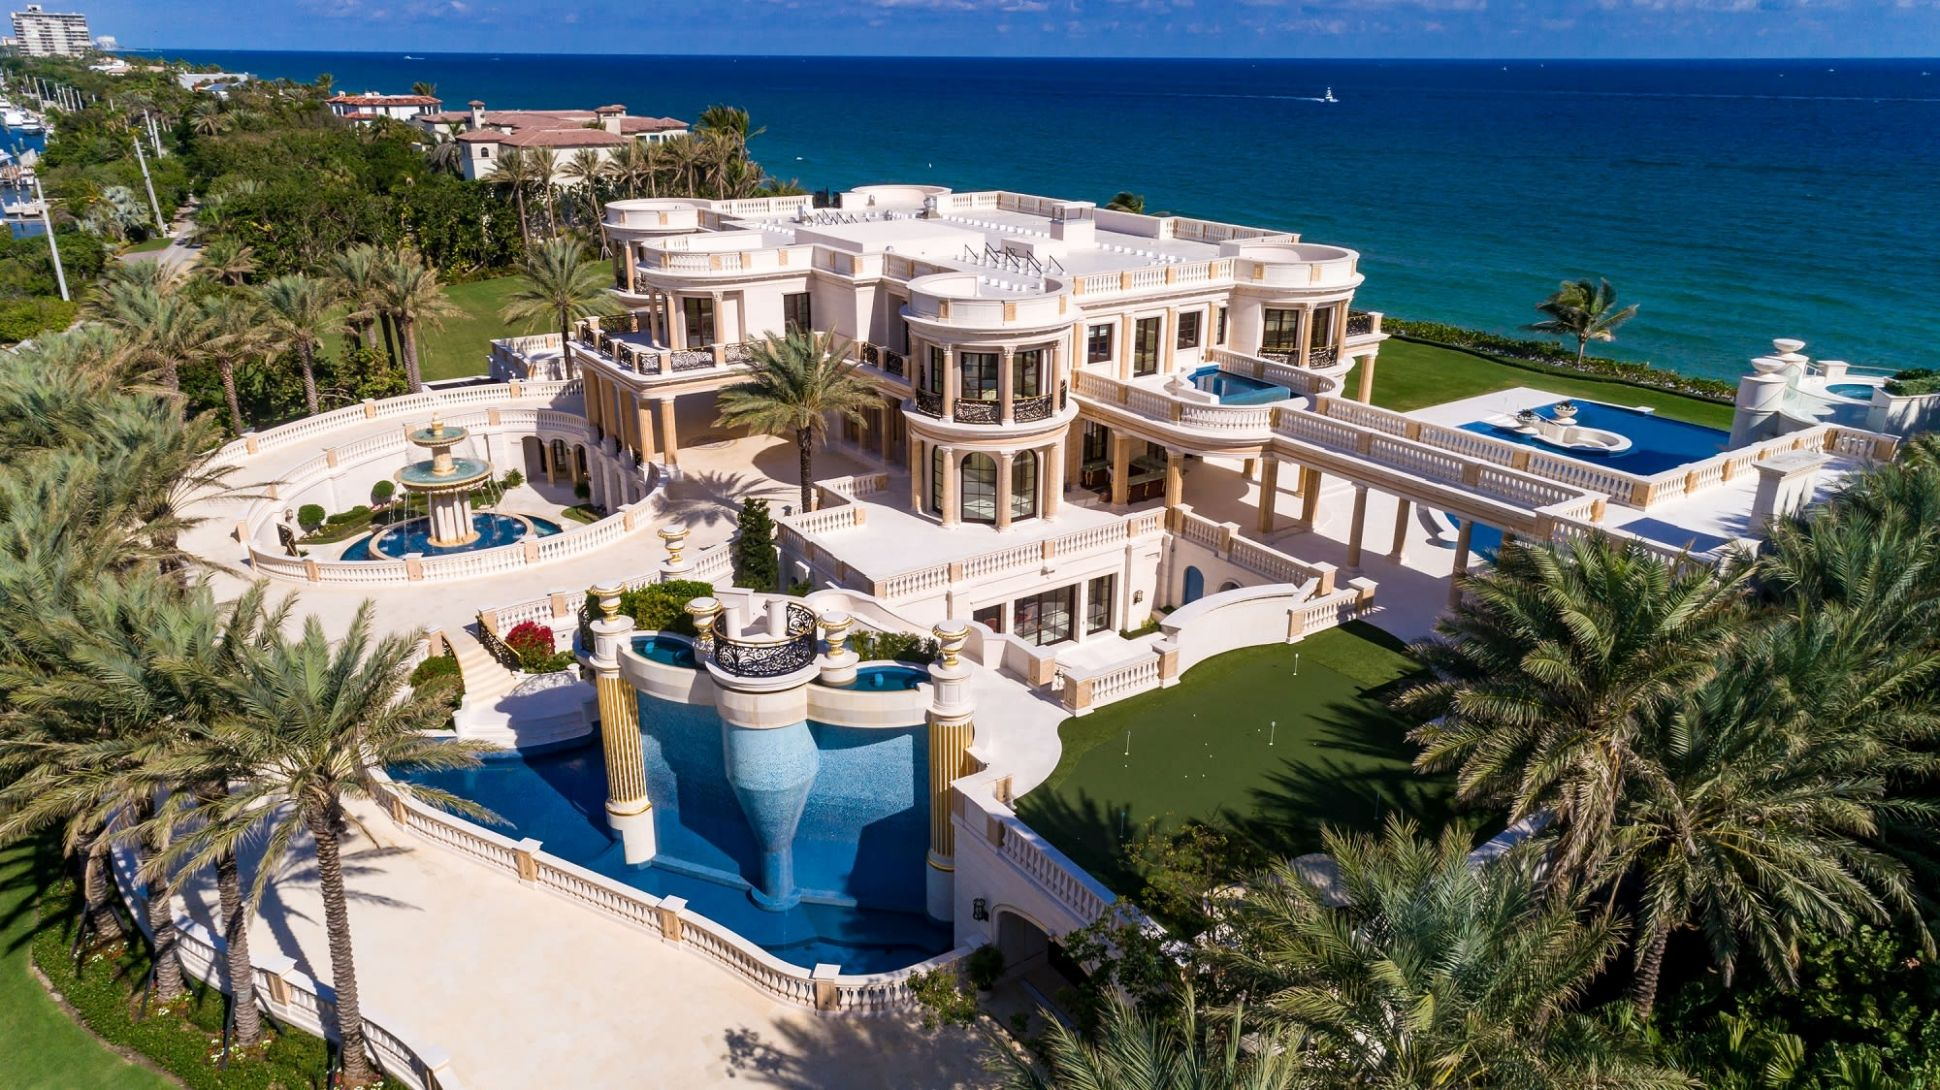 This $10 million Florida mansion is up for auction—take a look inside